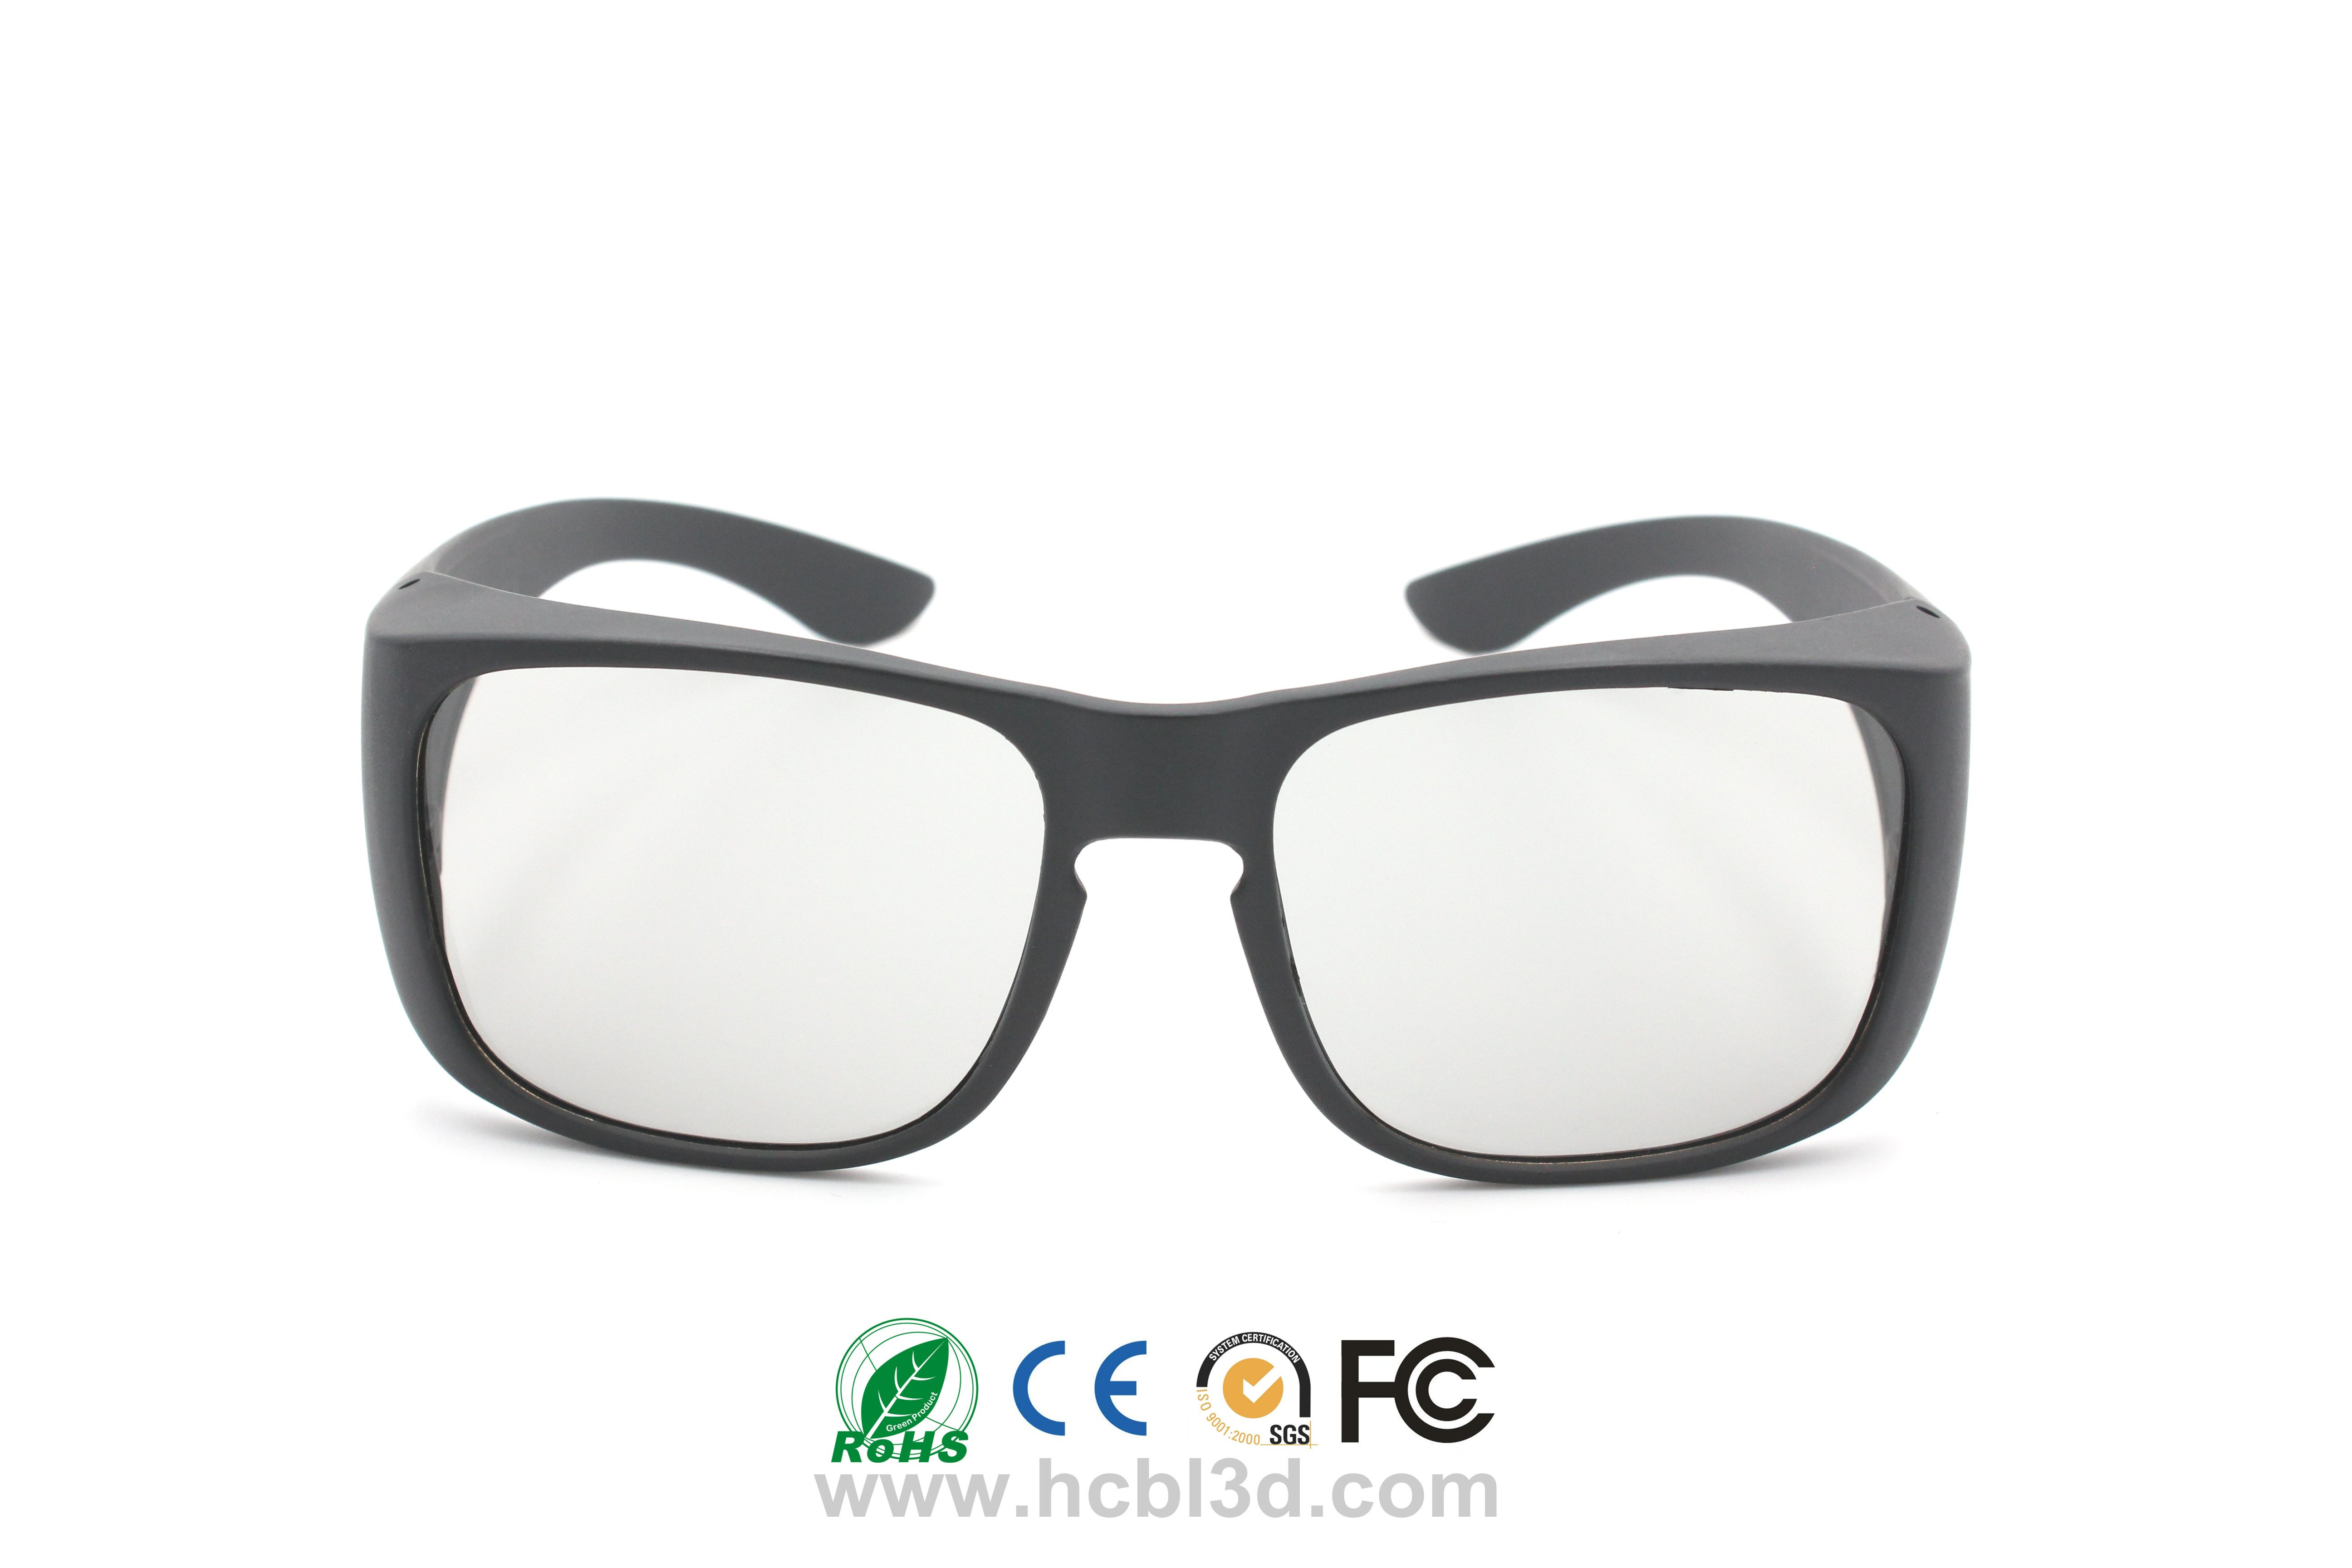 3D glasses with big frame, Caravan Type, Wide Field of Vision For Digital 3D Cinemas